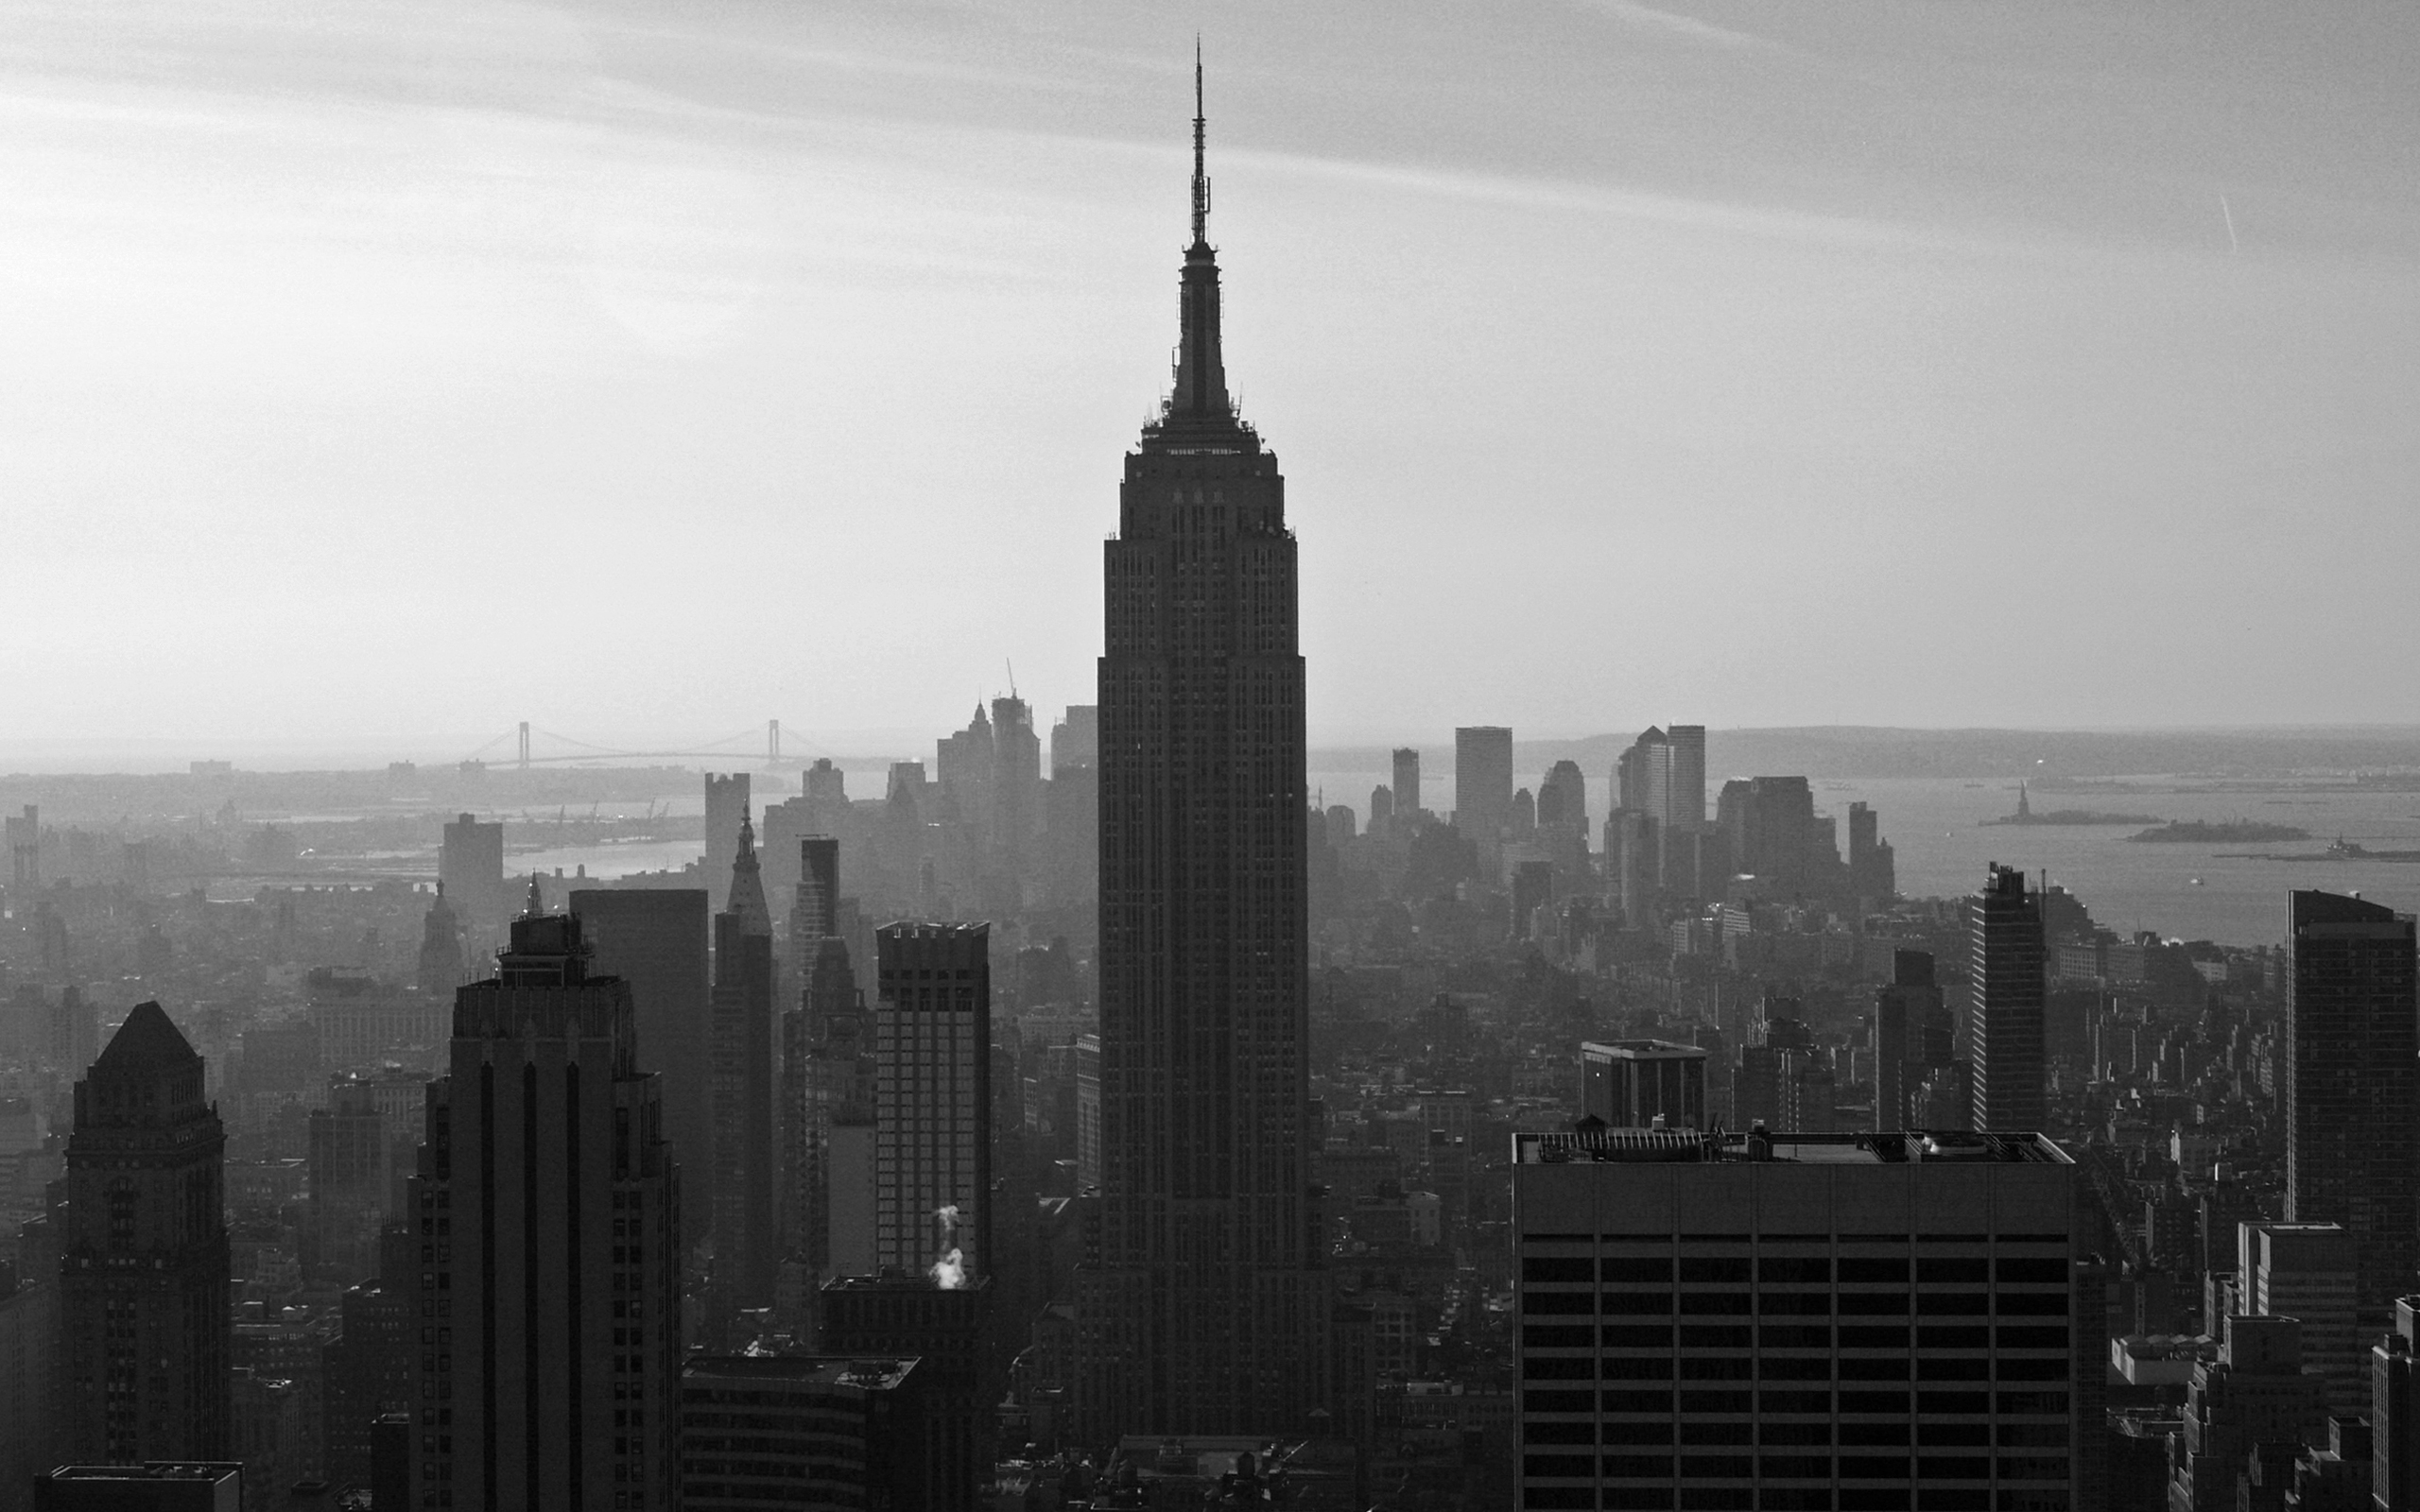 New York Hd Wallpaper Hintergrund 2560x1600 Id82252